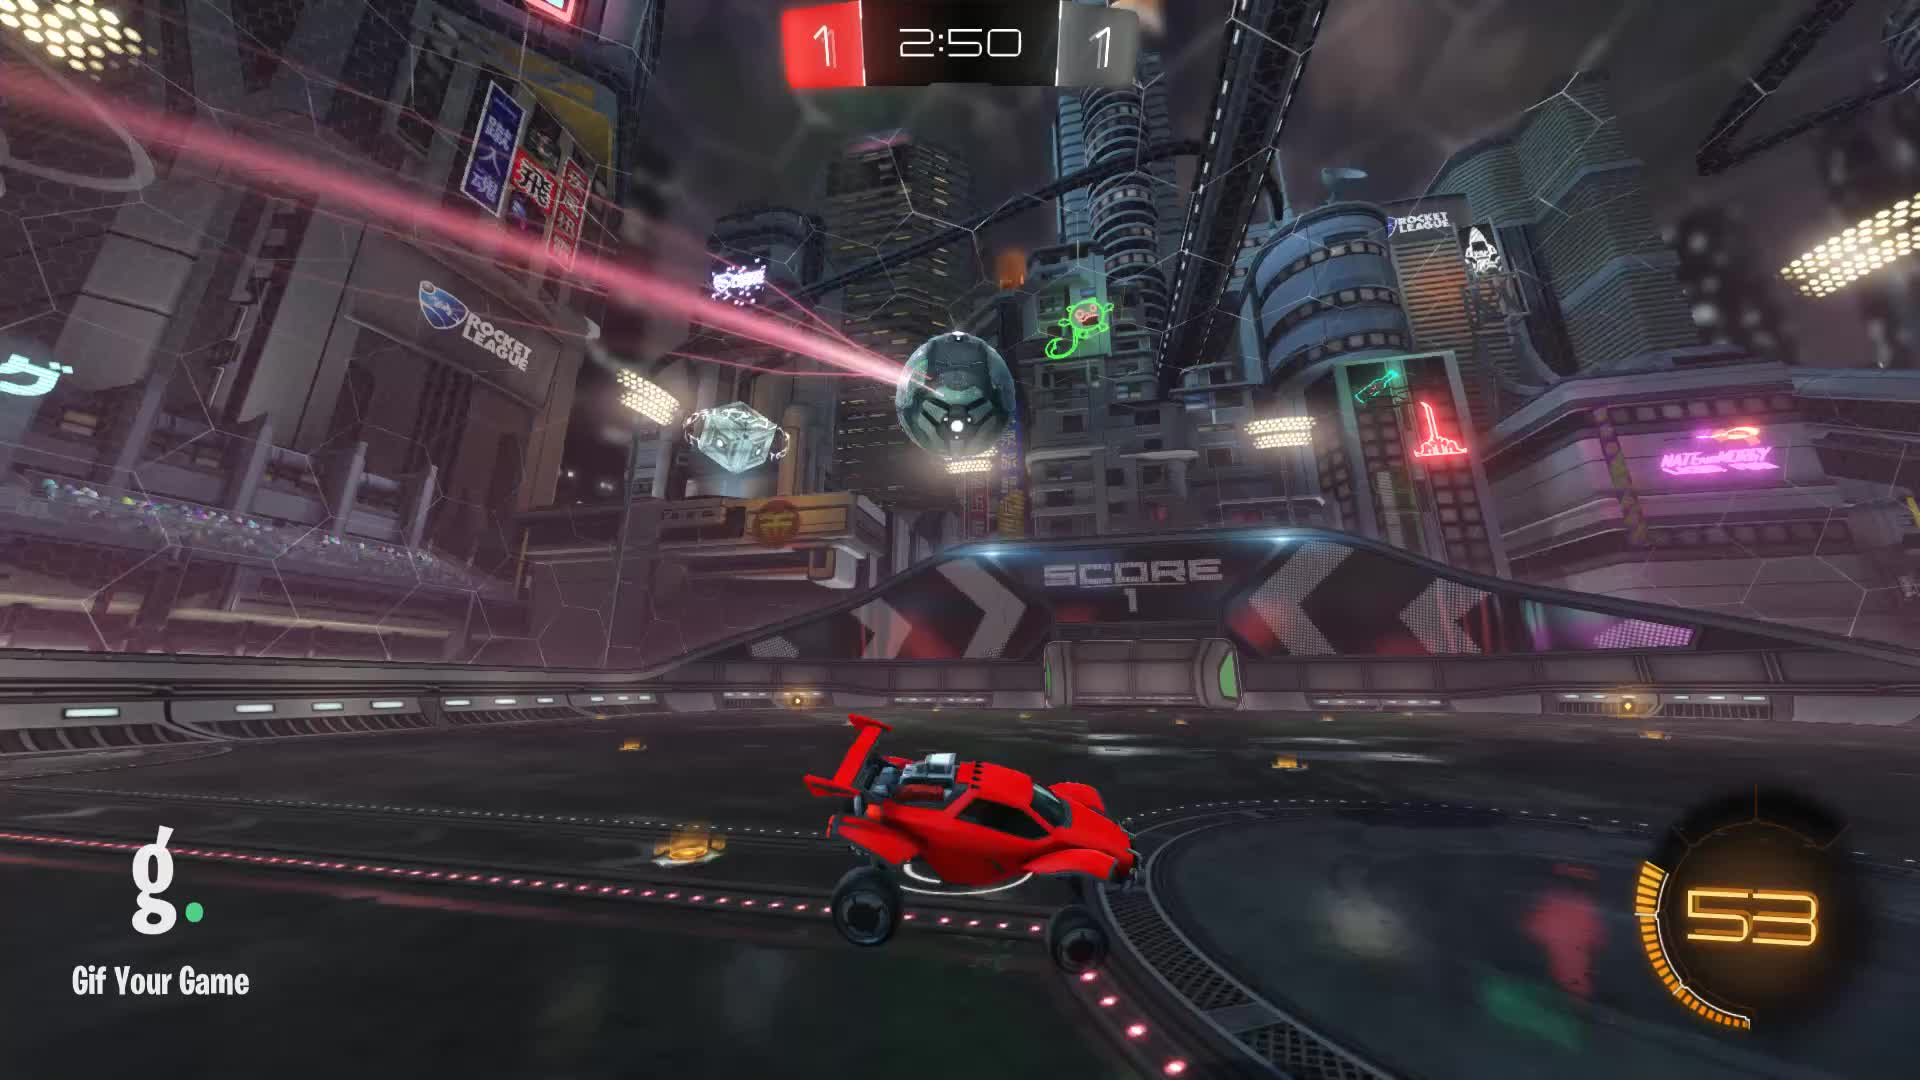 Gif Your Game, GifYourGame, Goal, Rocket League, RocketLeague, SwiftTime0, Goal 3: SwiftTime0 GIFs